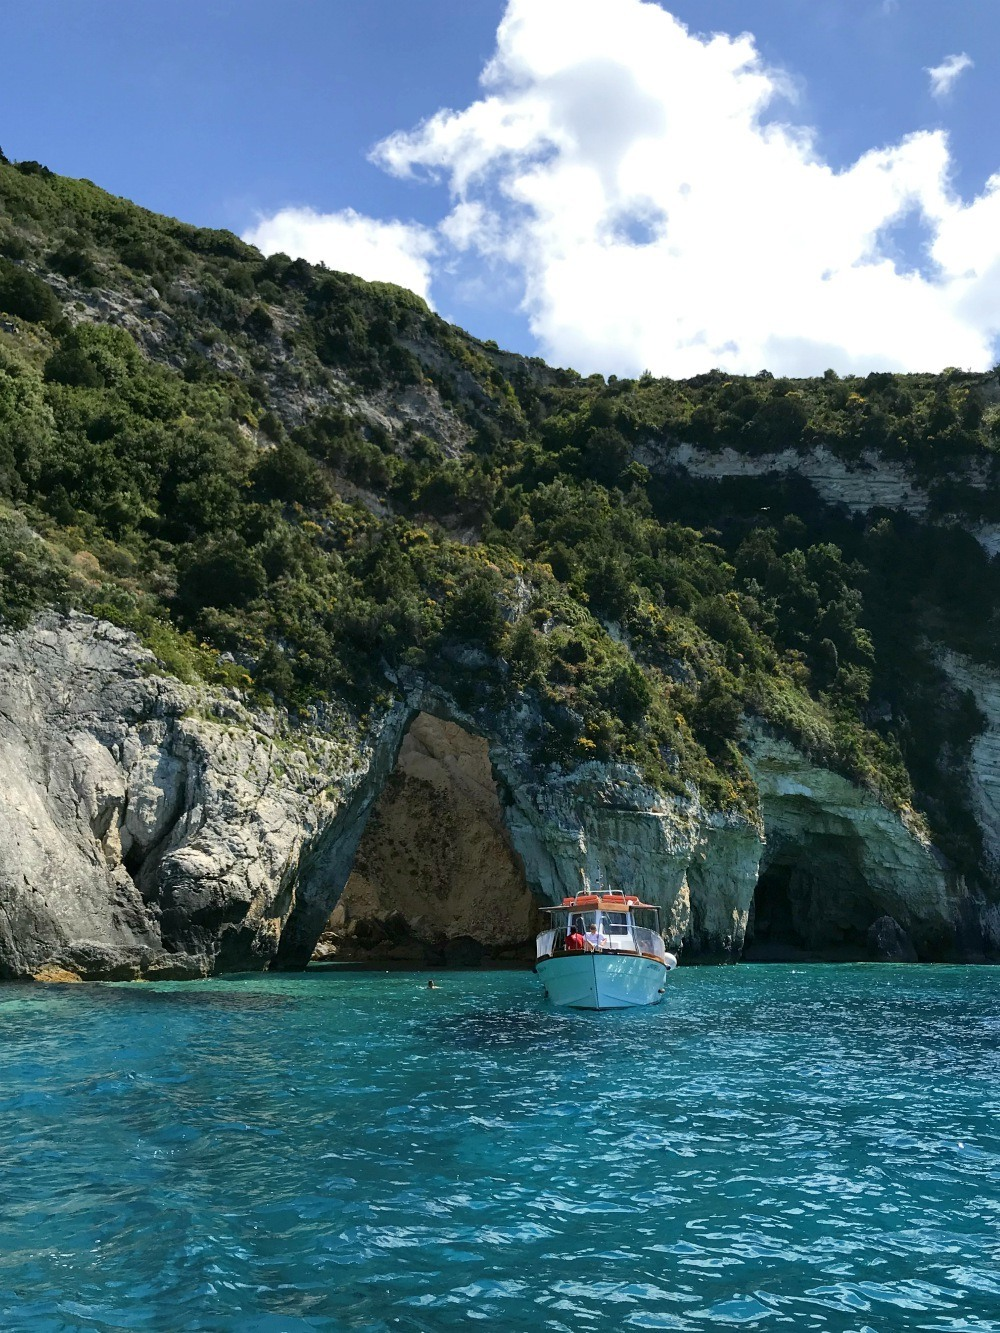 Boat trip in Paxos Greece Photo Heatheronhertravels.com